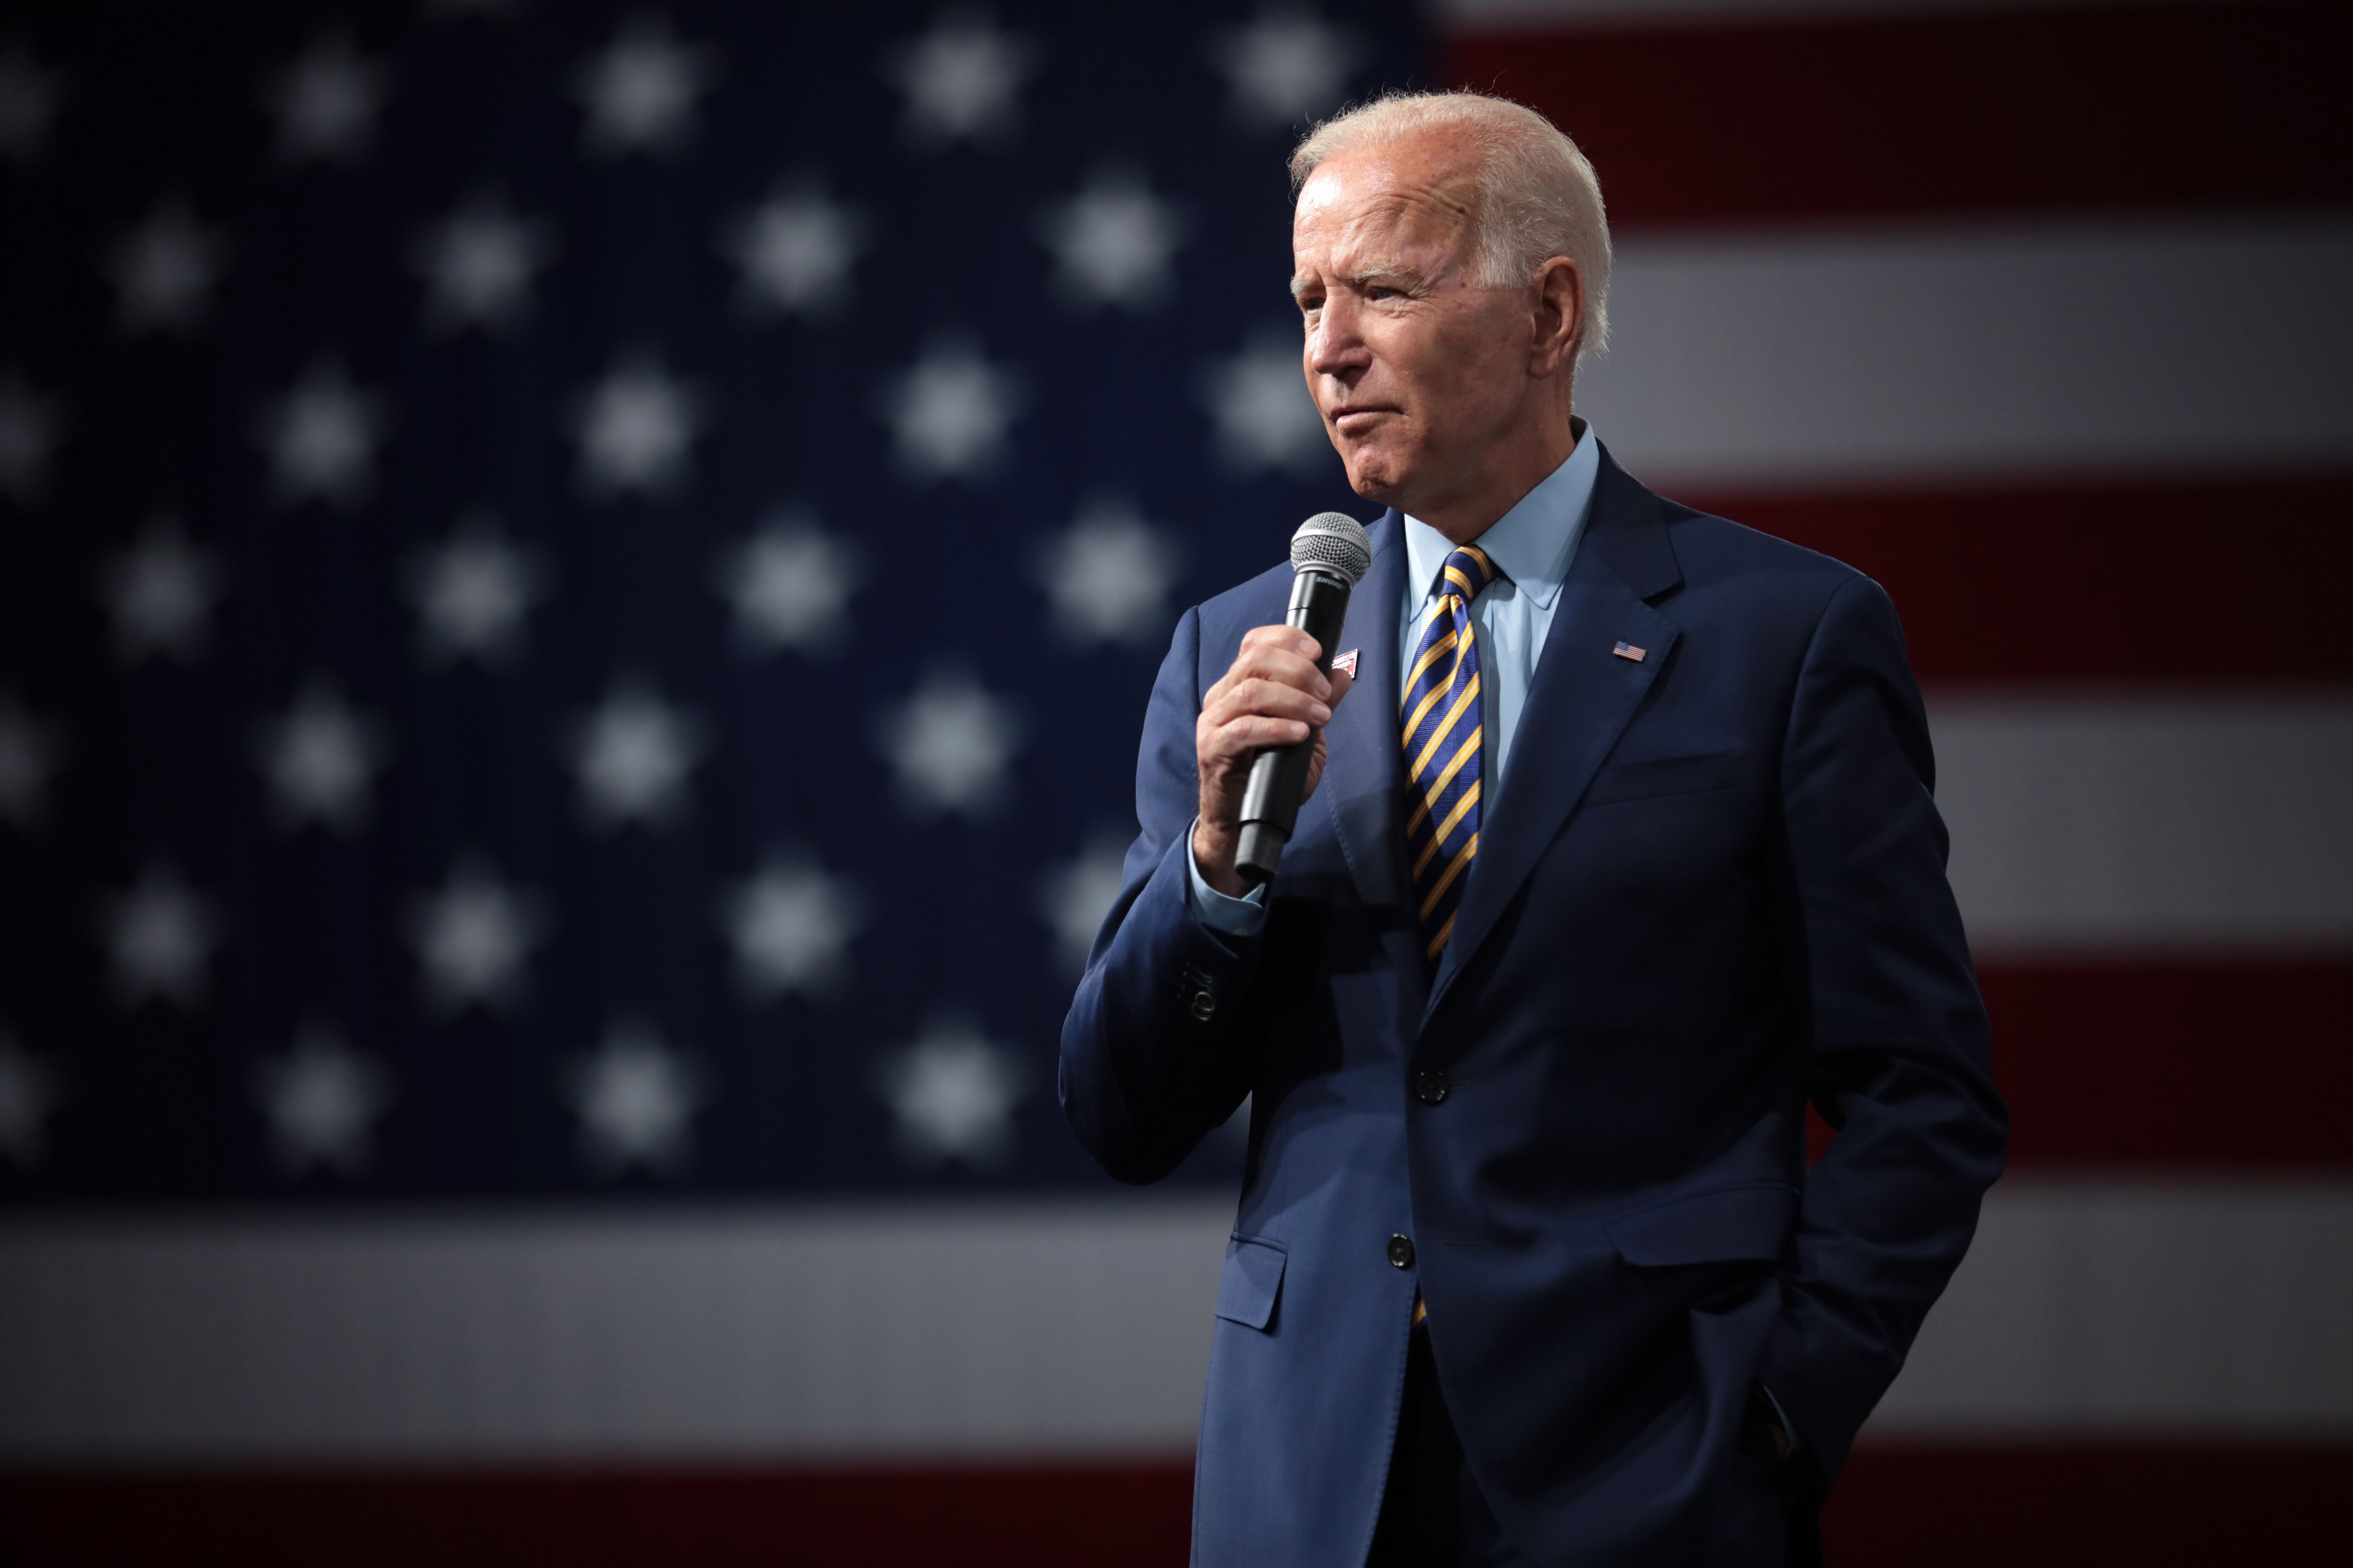 Joe Biden in front of a US flag